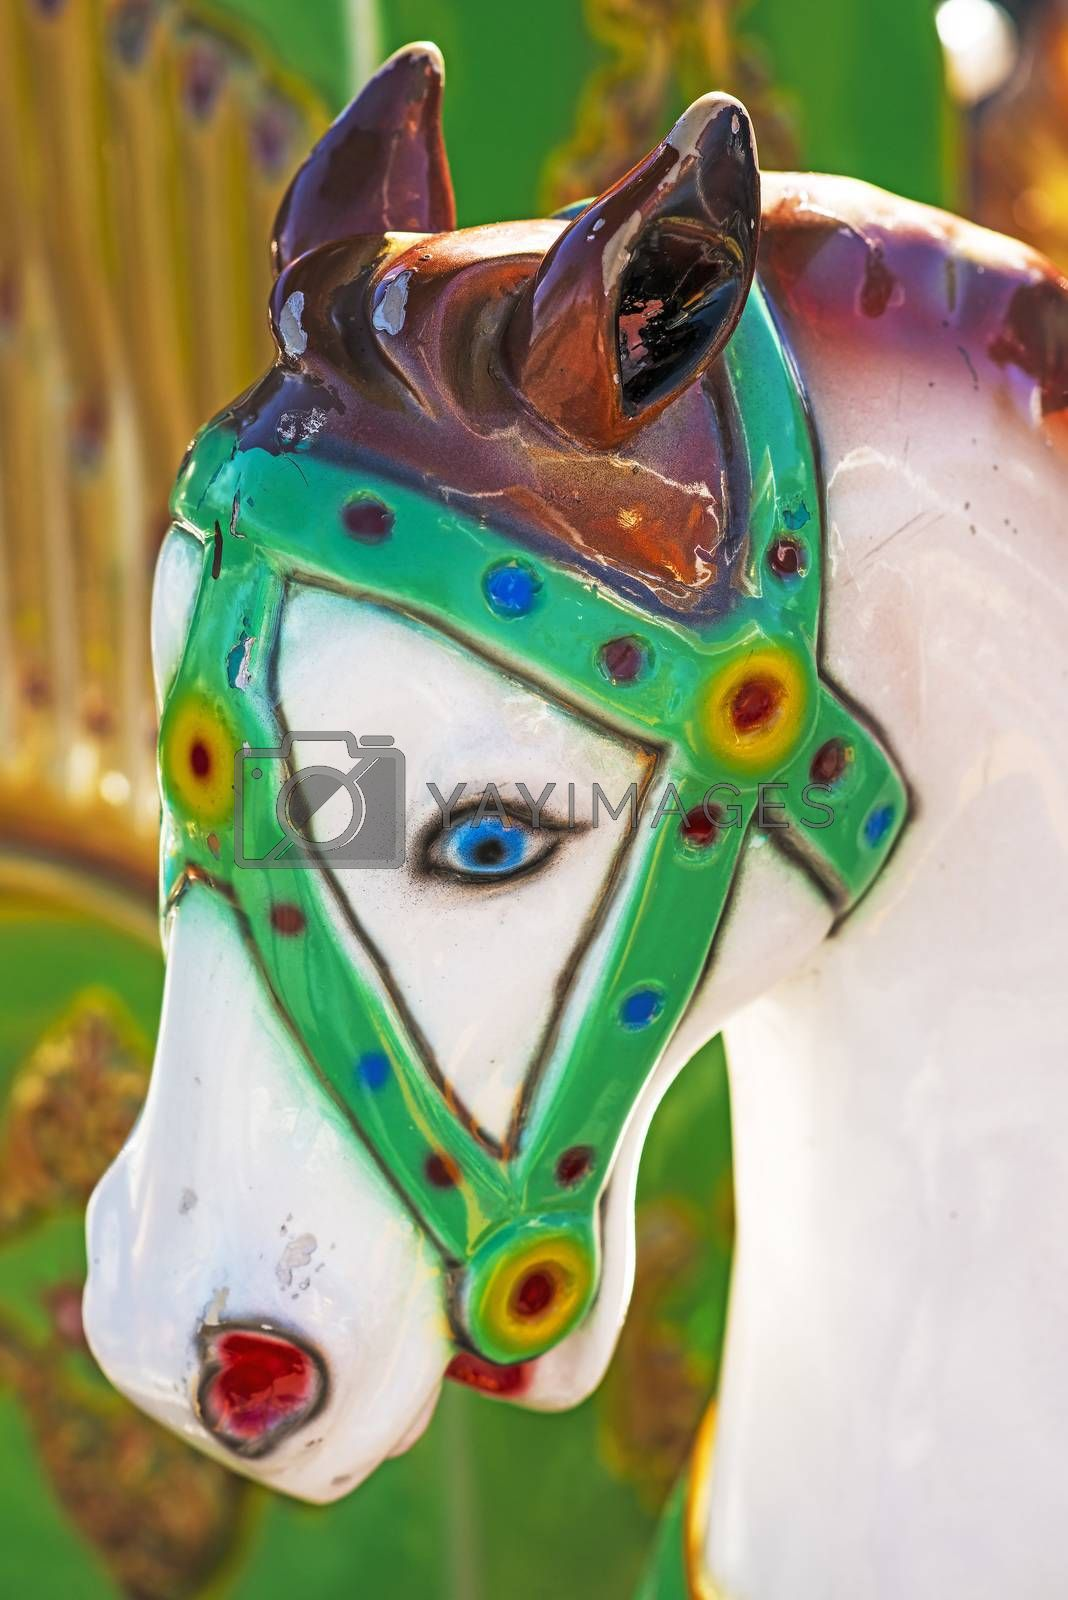 horse of a carousel